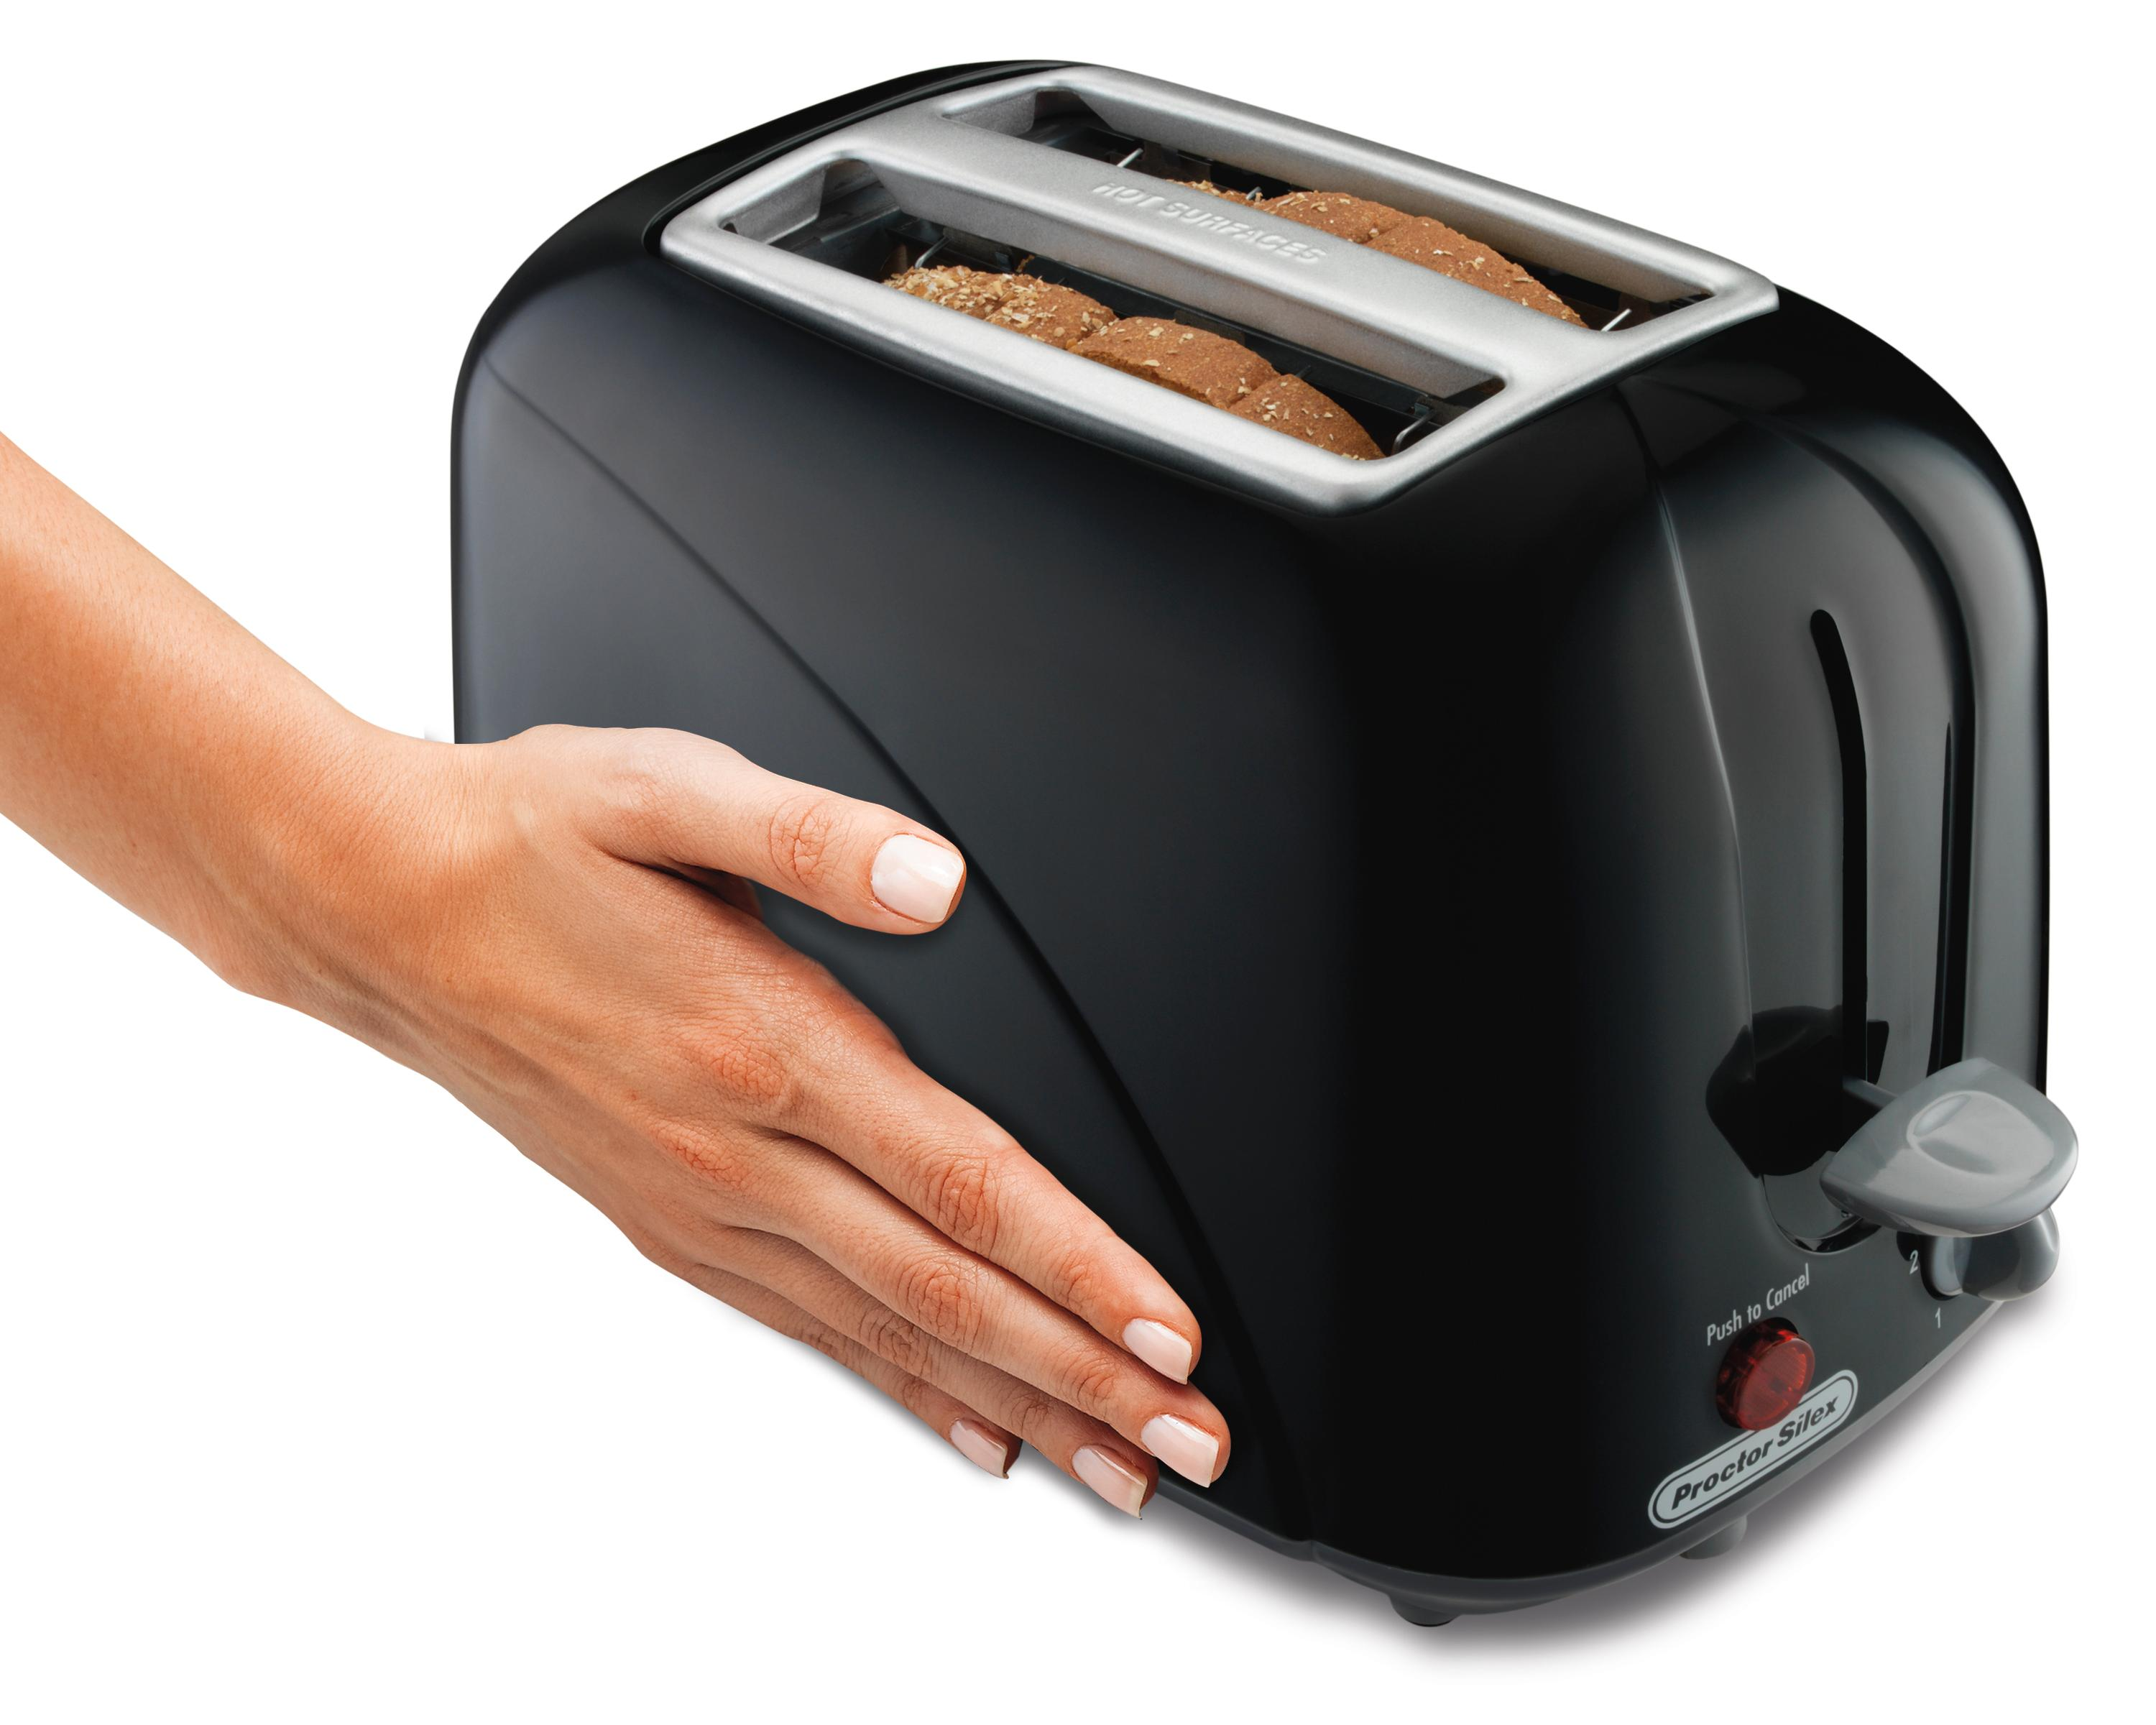 Proctor Silex 22210 2 Slice Toaster Black Kitchen Dining